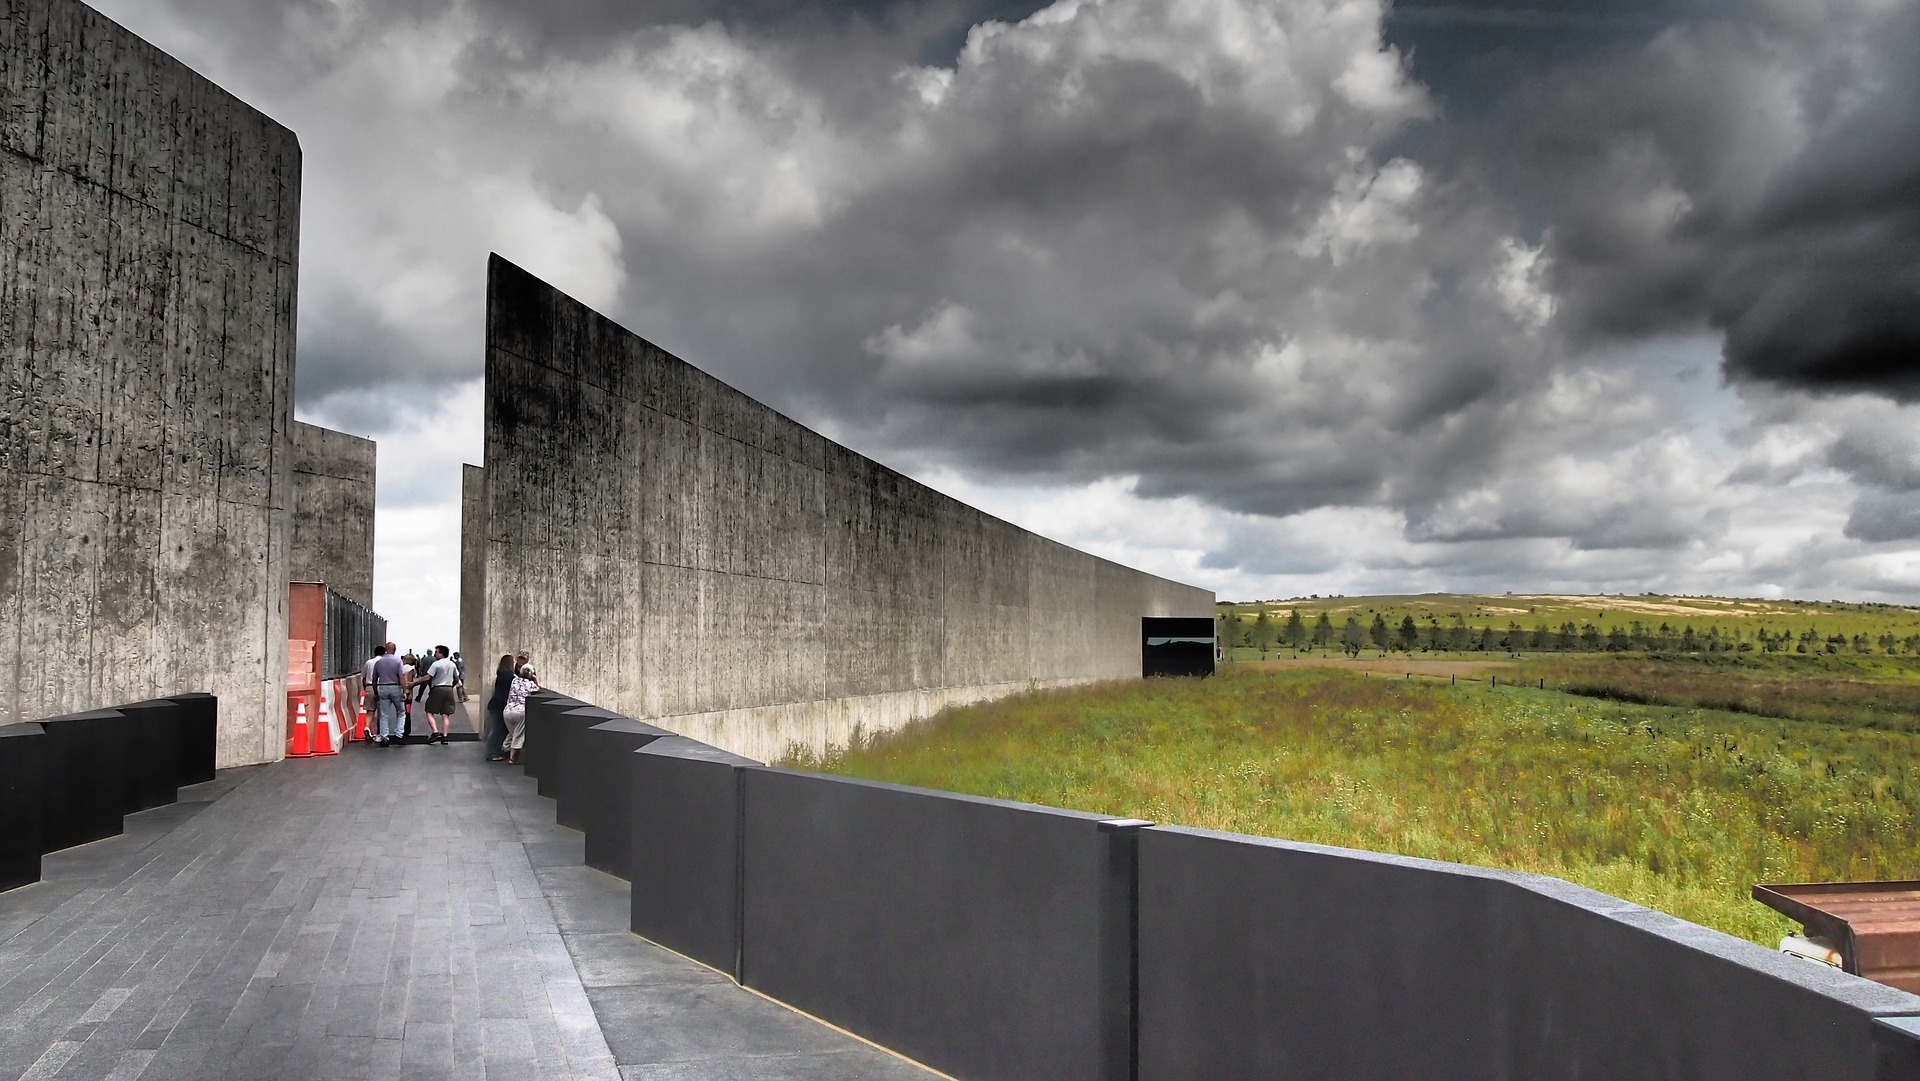 Stories from 9/11 at Flight 93 National Memorial